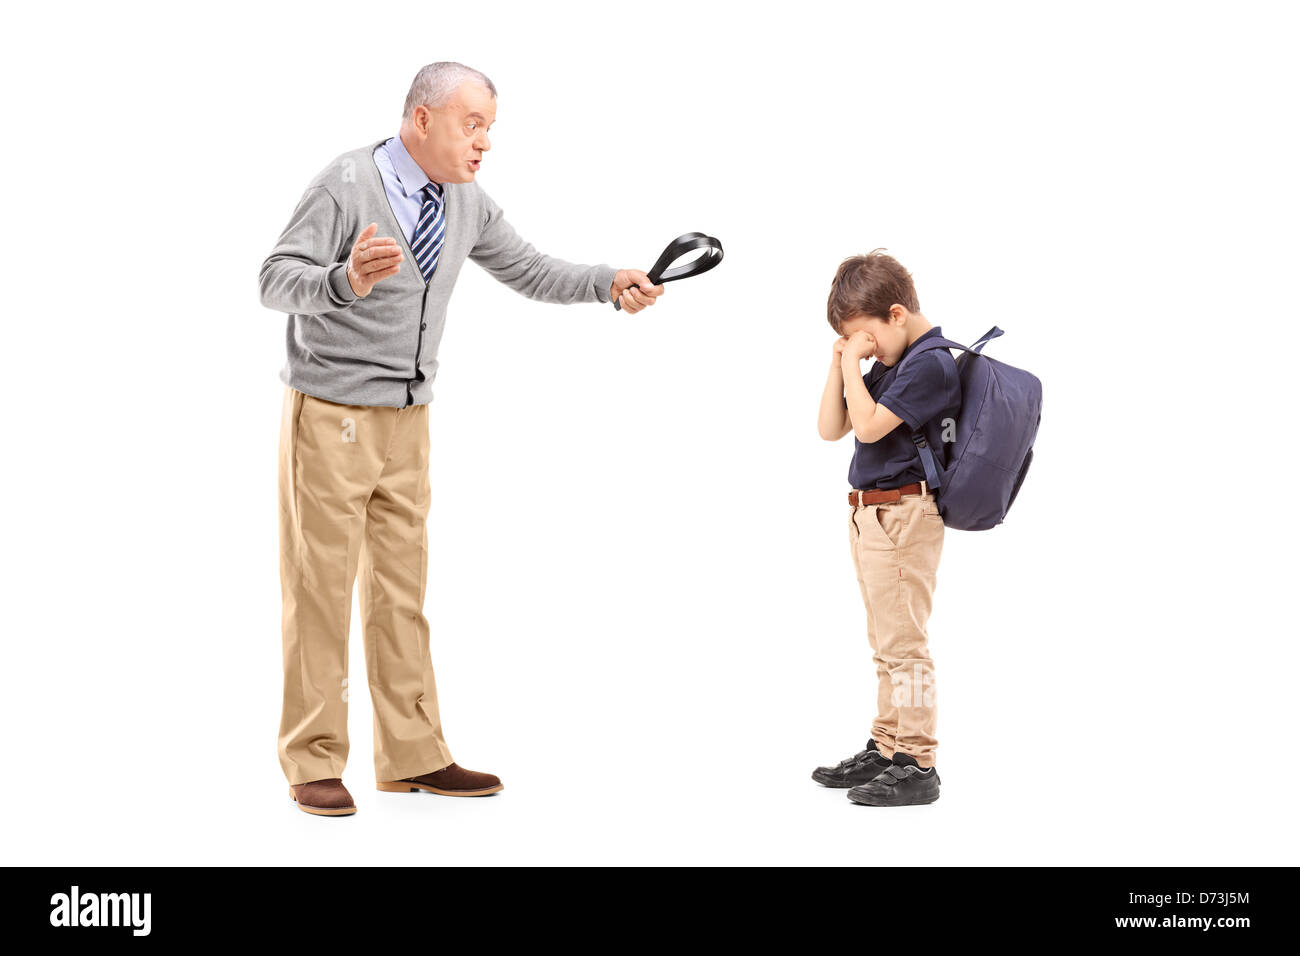 Full length portrait of an angry grandfather holding a belt and shouting at his nephew isolated on white background - Stock Image